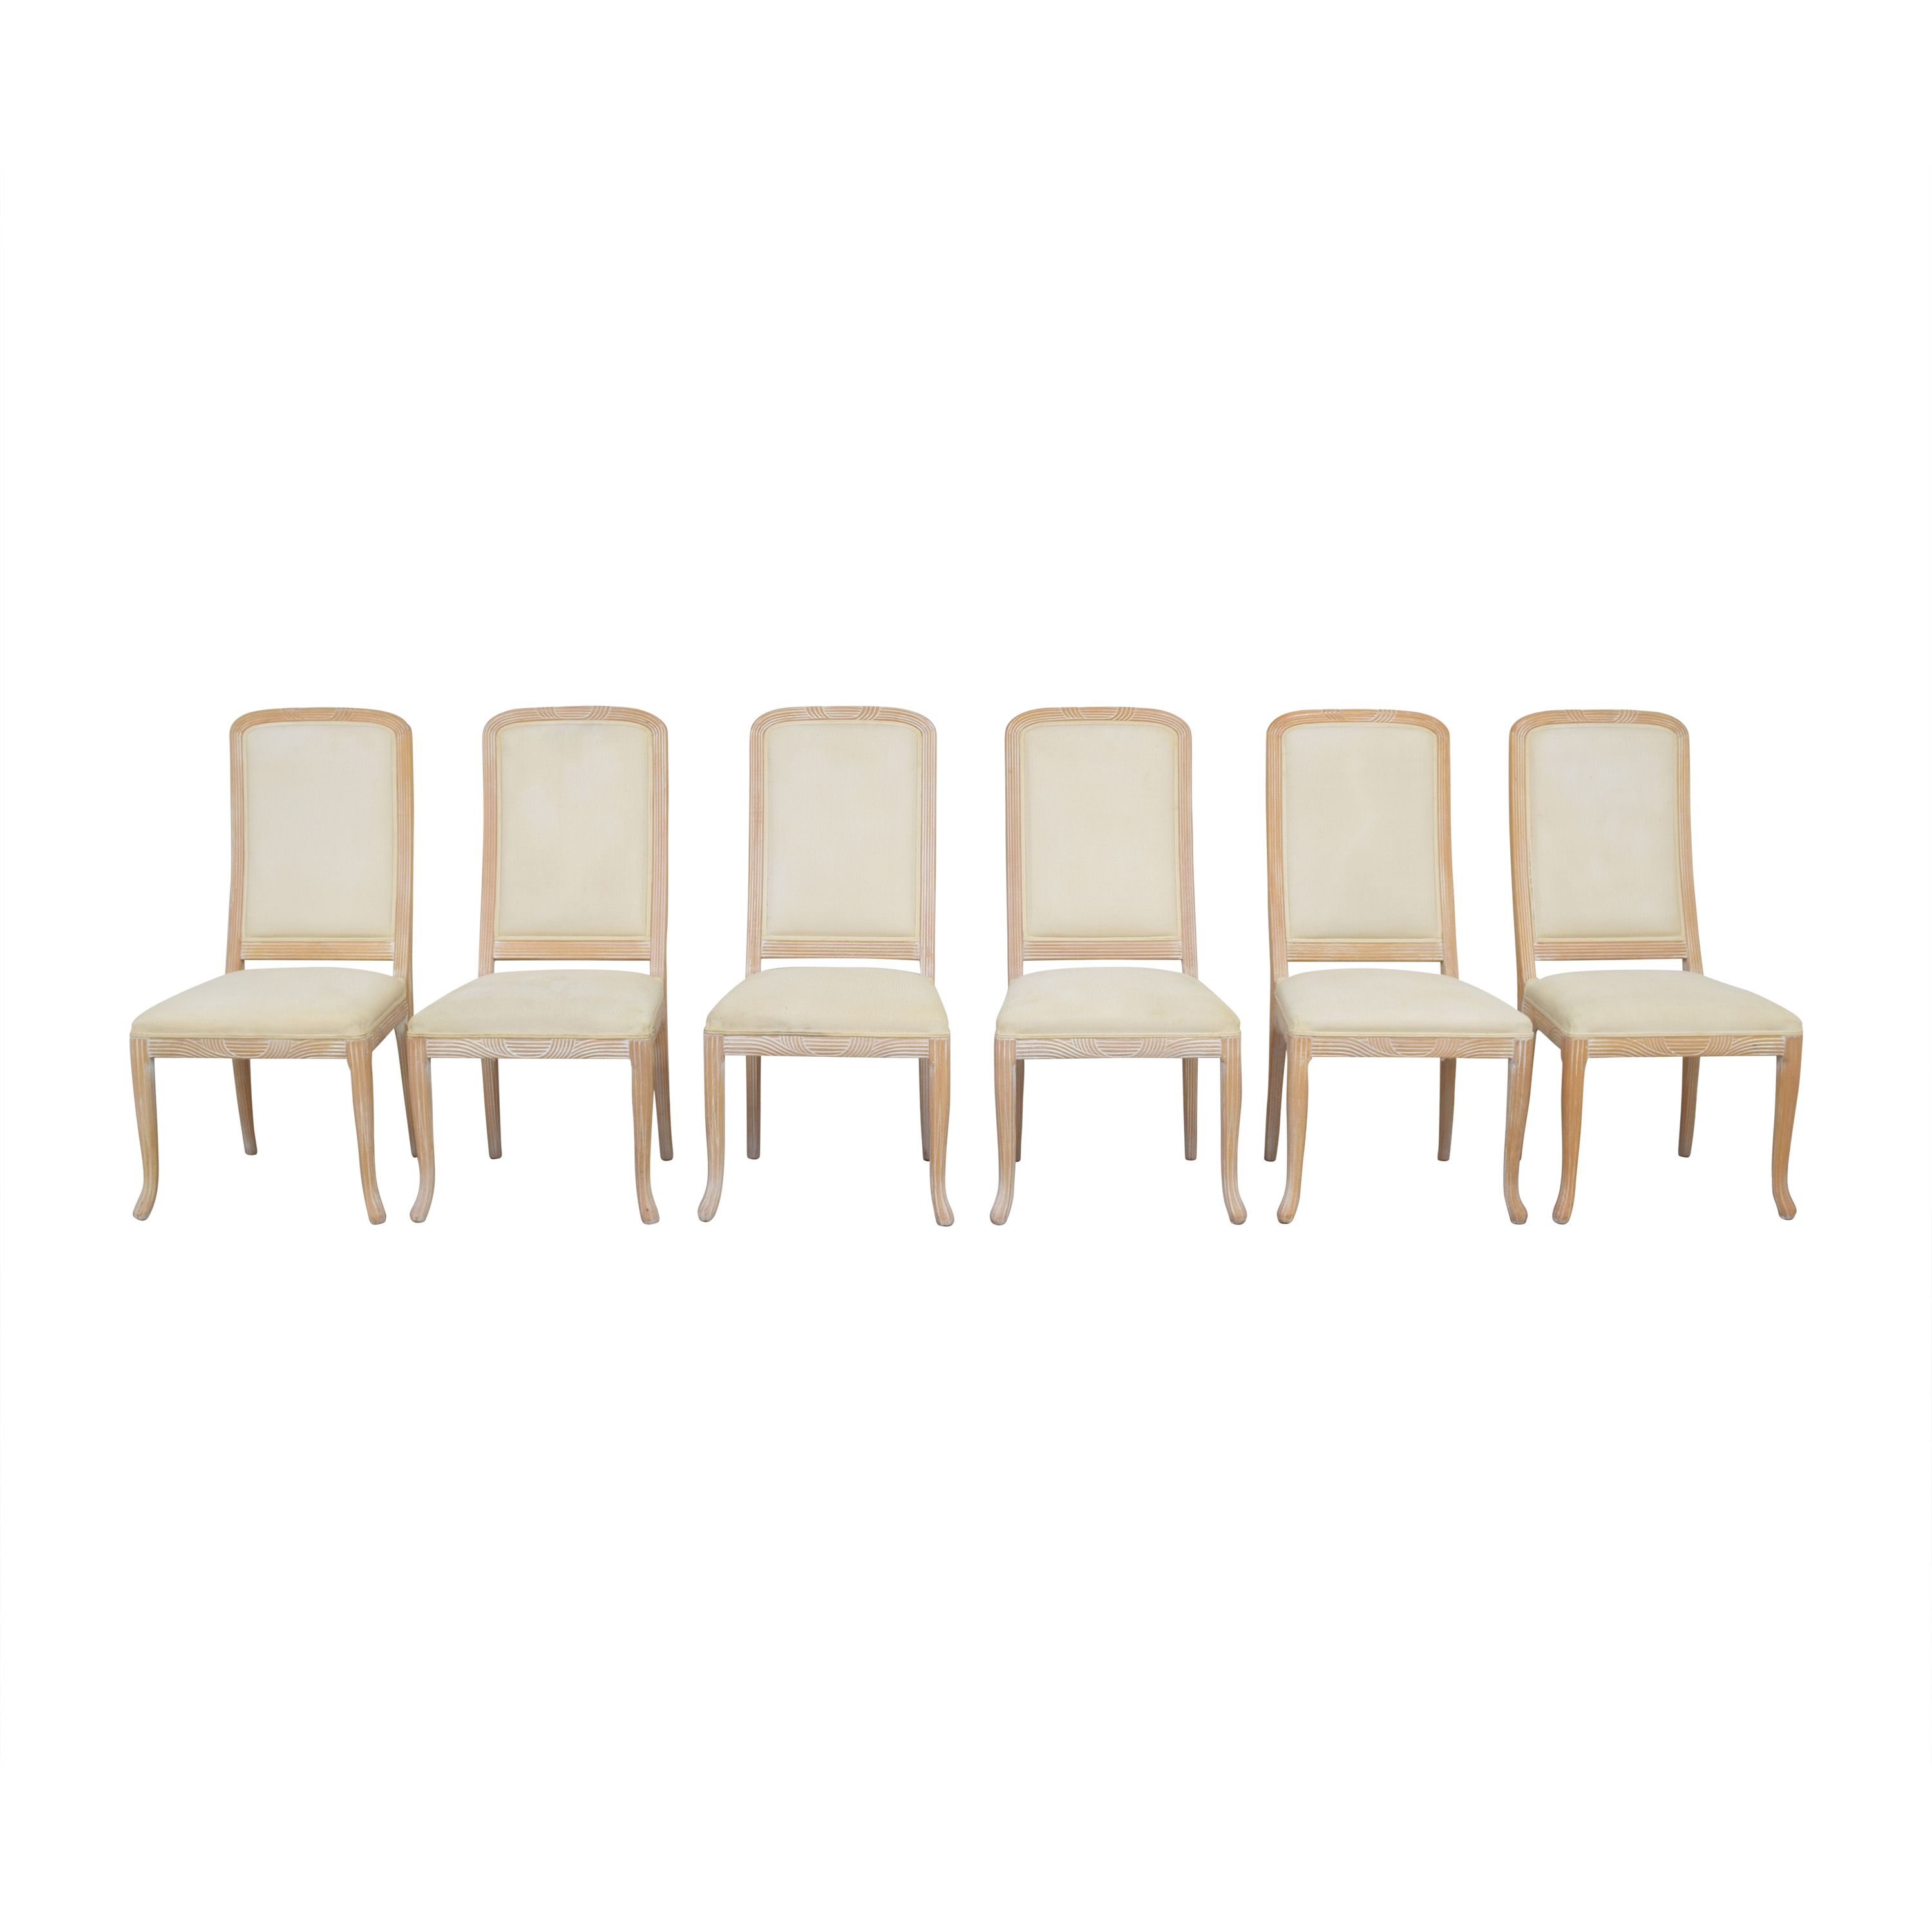 buy Buying & Design Upholstered Dining Side Chairs Buying & Design